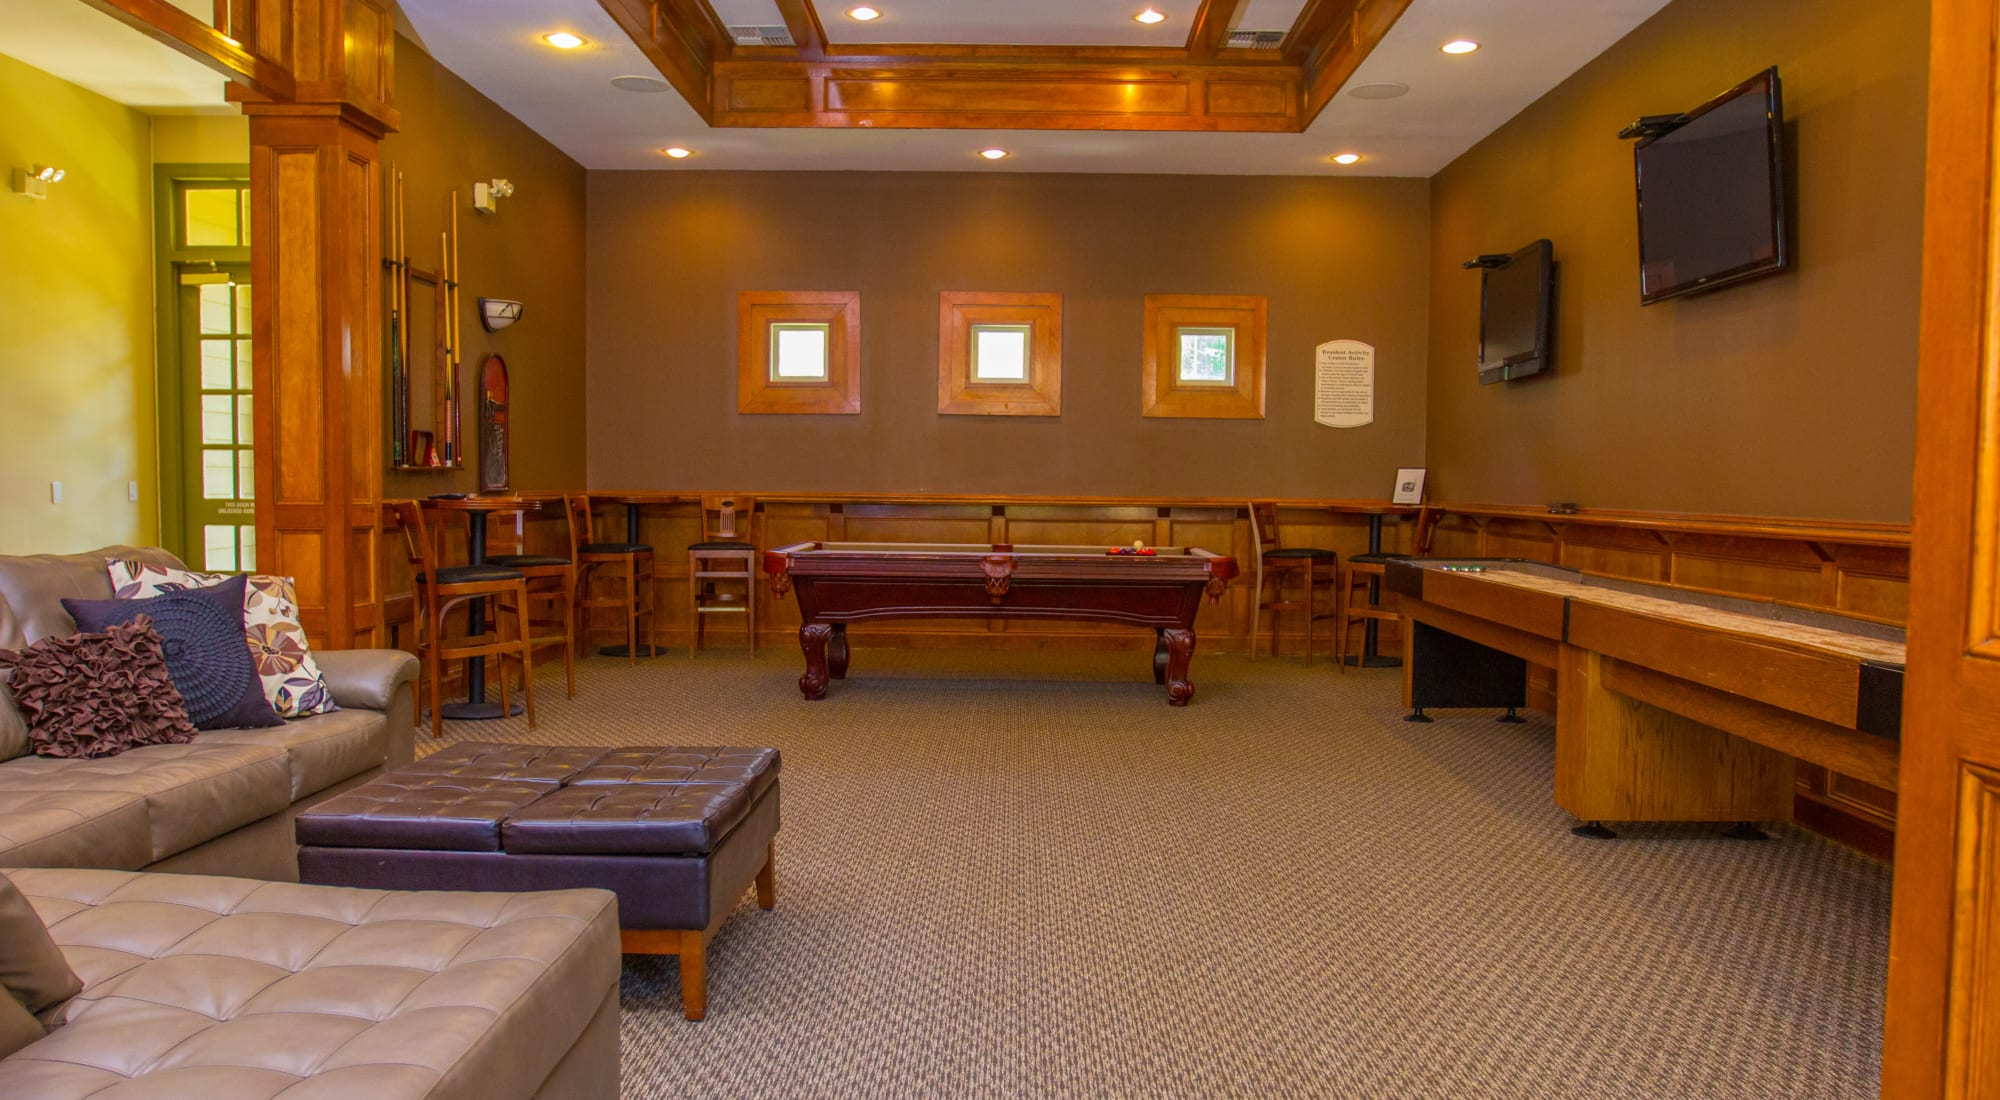 Amenities at The Lodge at River Park in Fort Worth, Texas